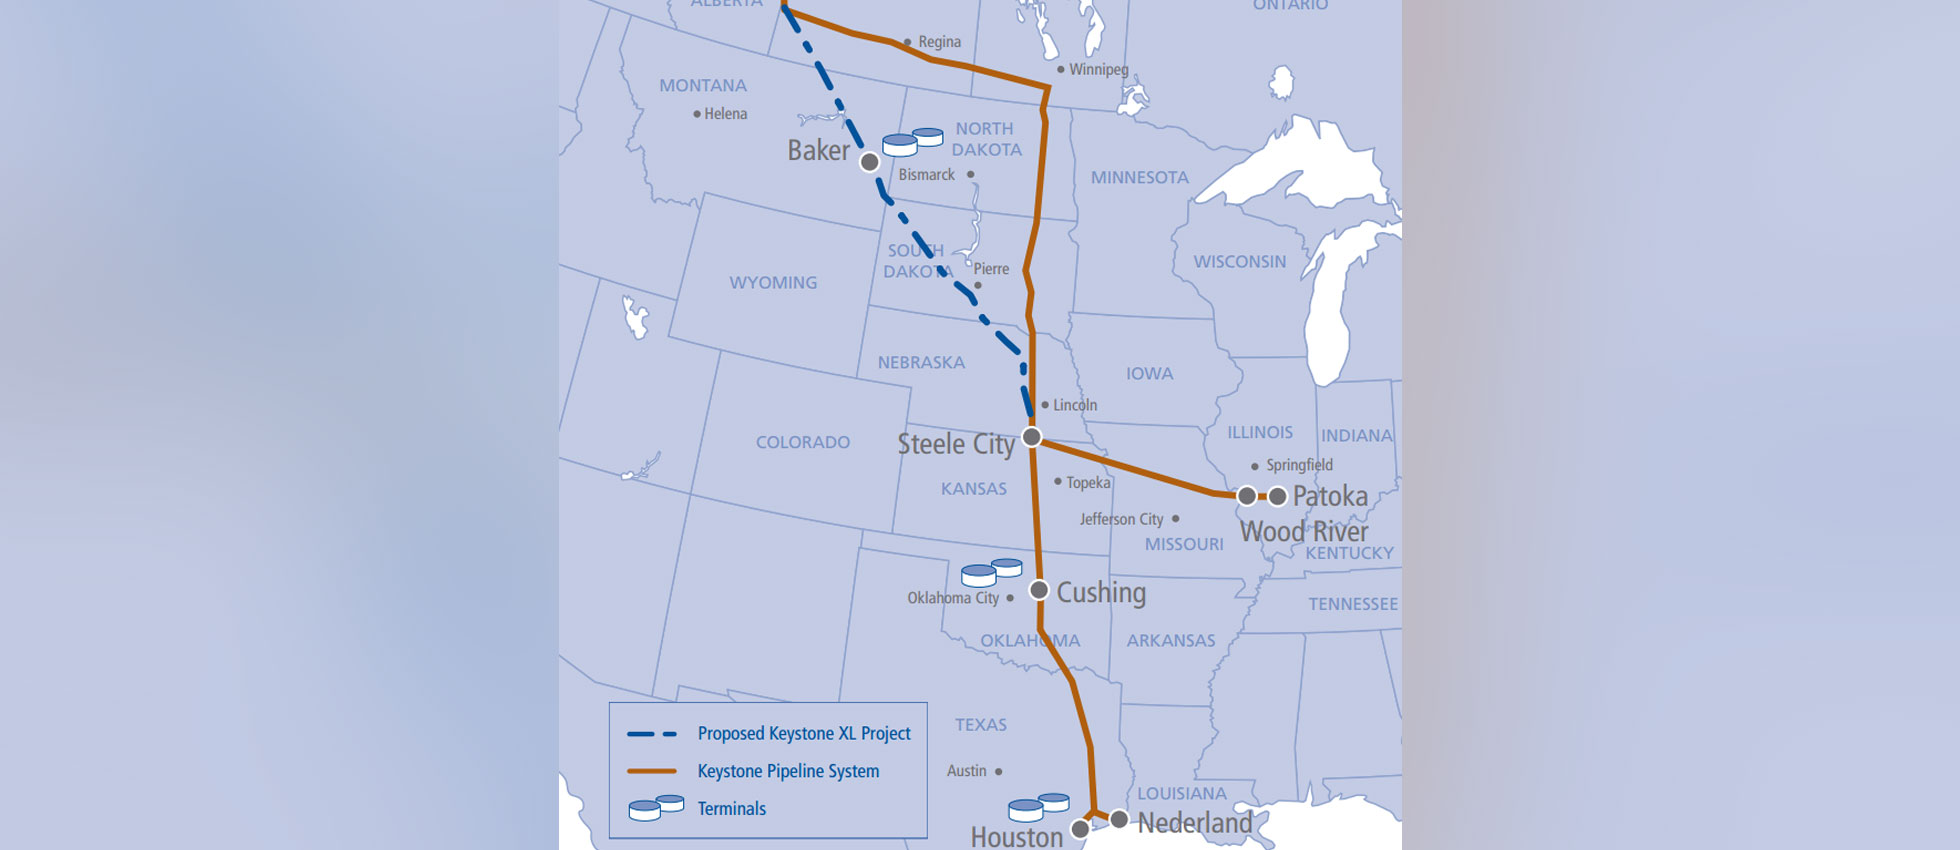 environmental groups challenge keystone xl pipeline approval